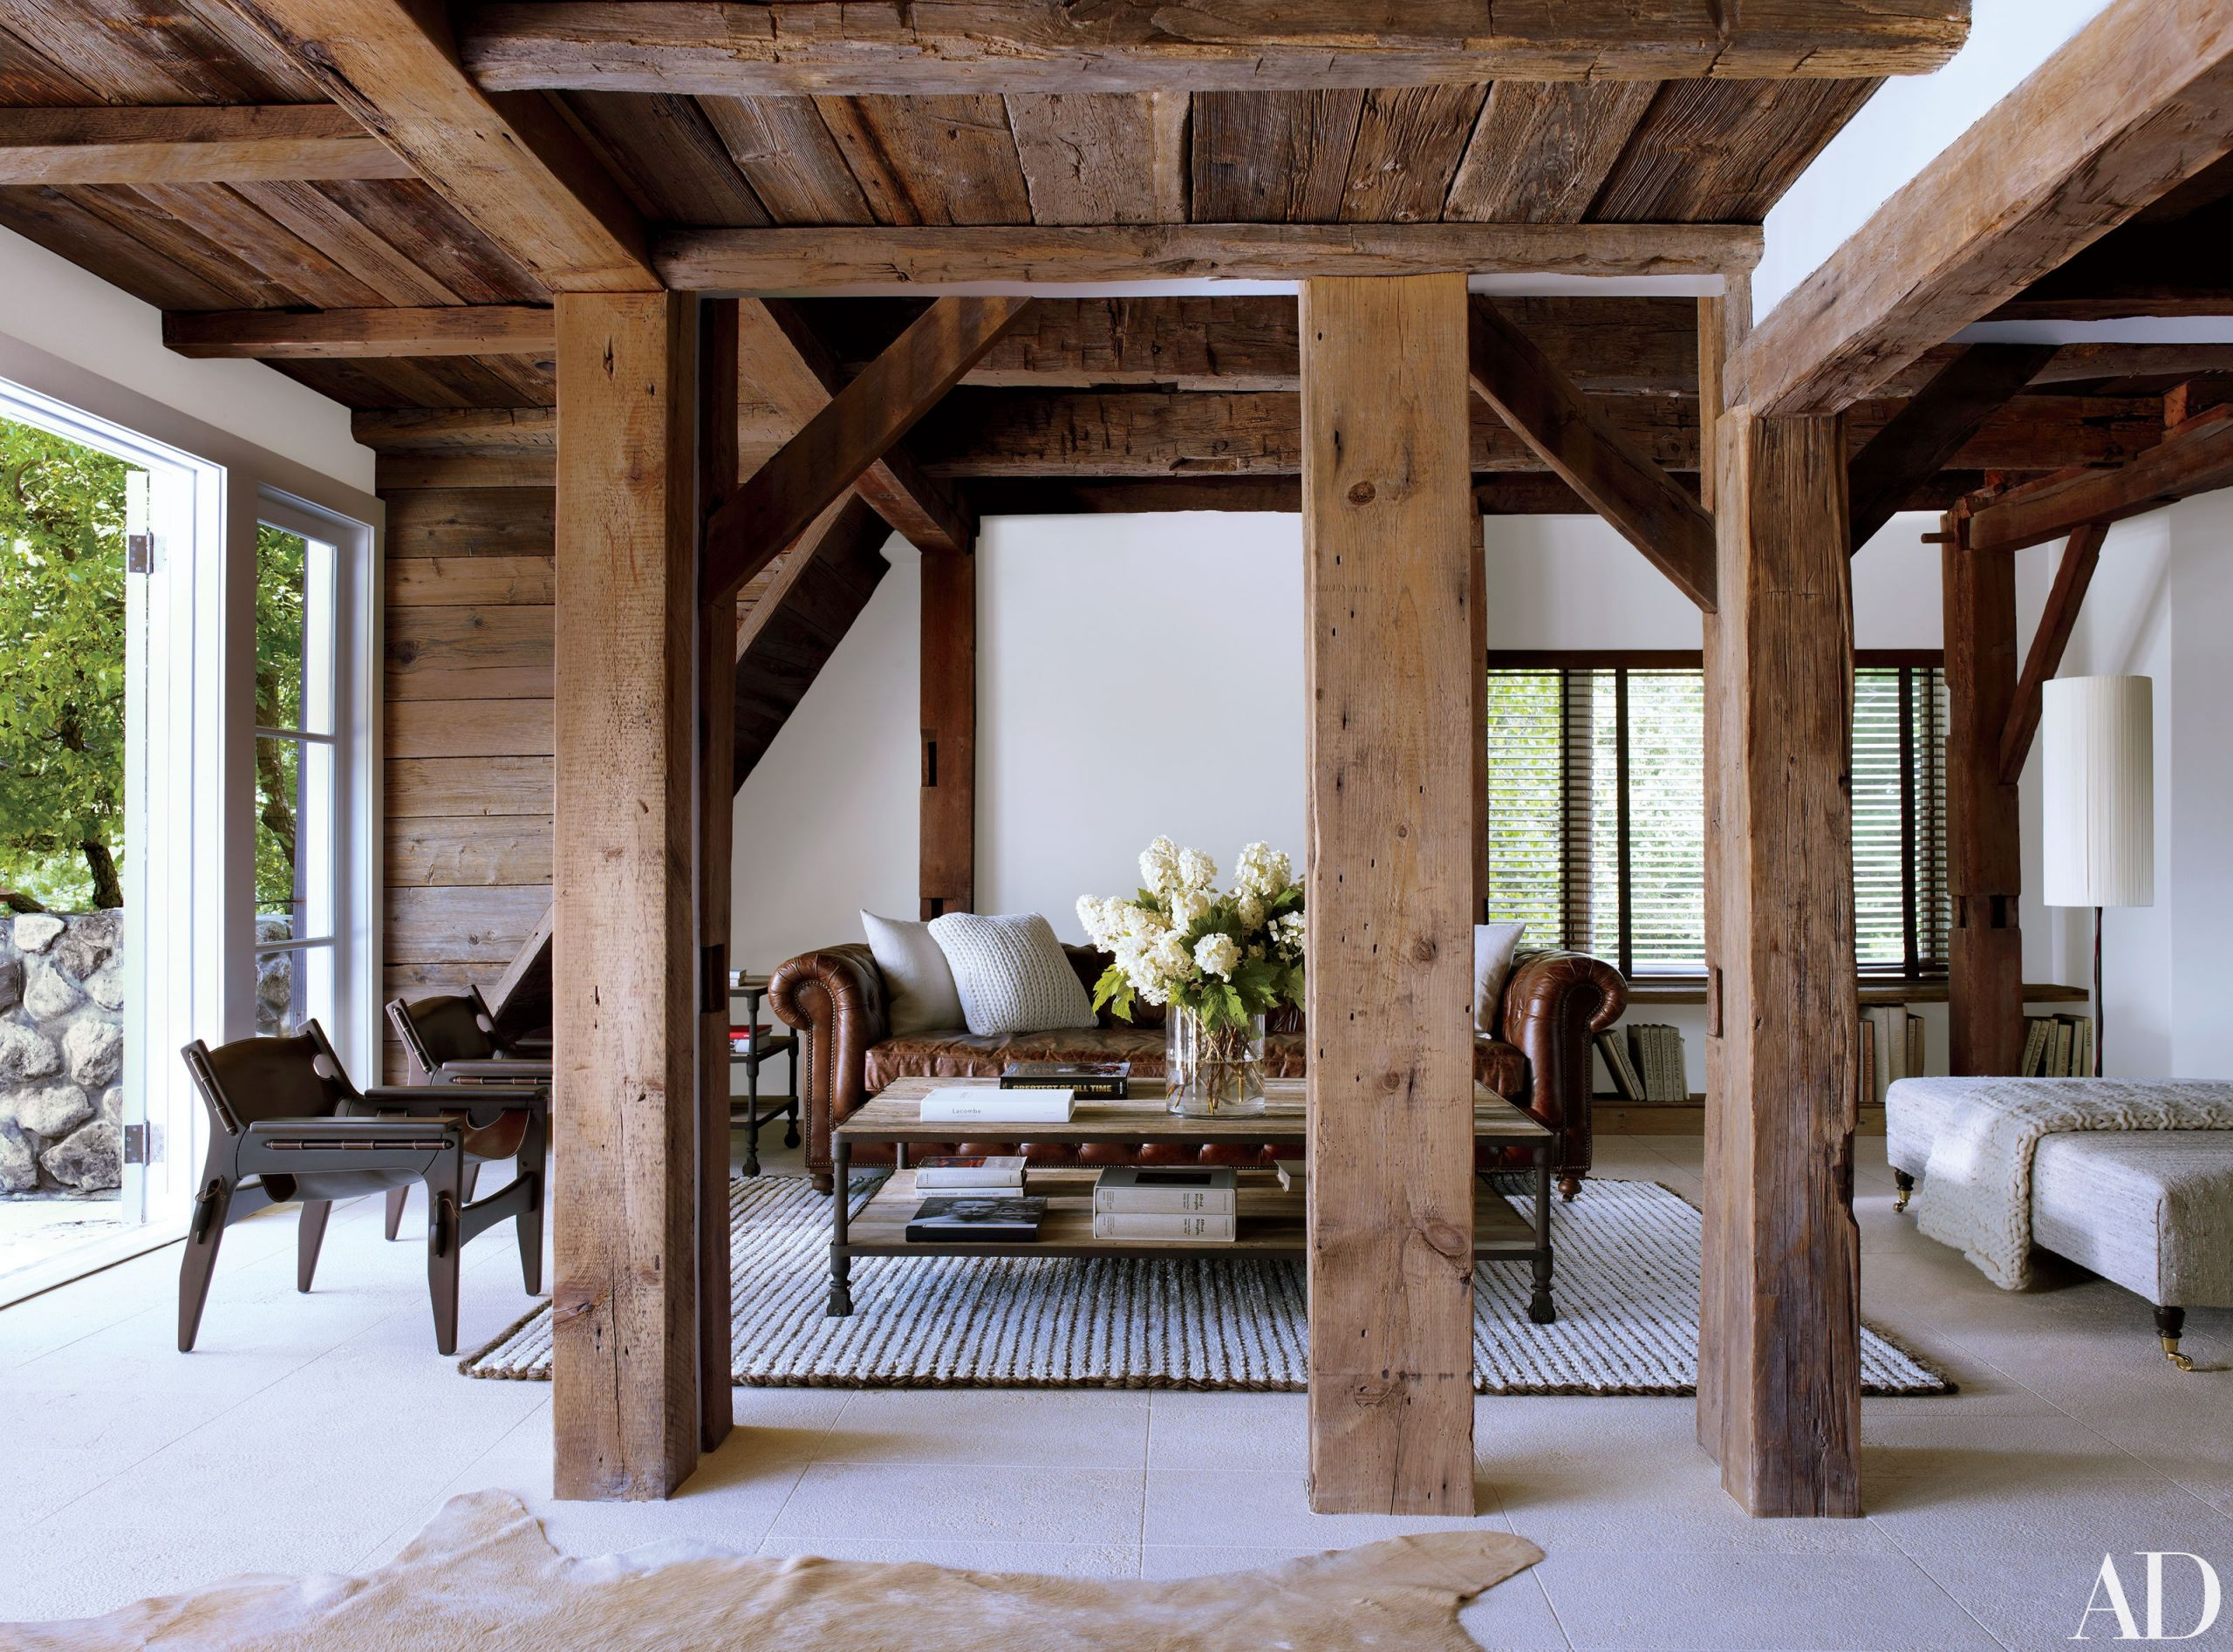 Rustic Living Room Photos  13 Utterly Inviting Rustic Living Room Ideas s